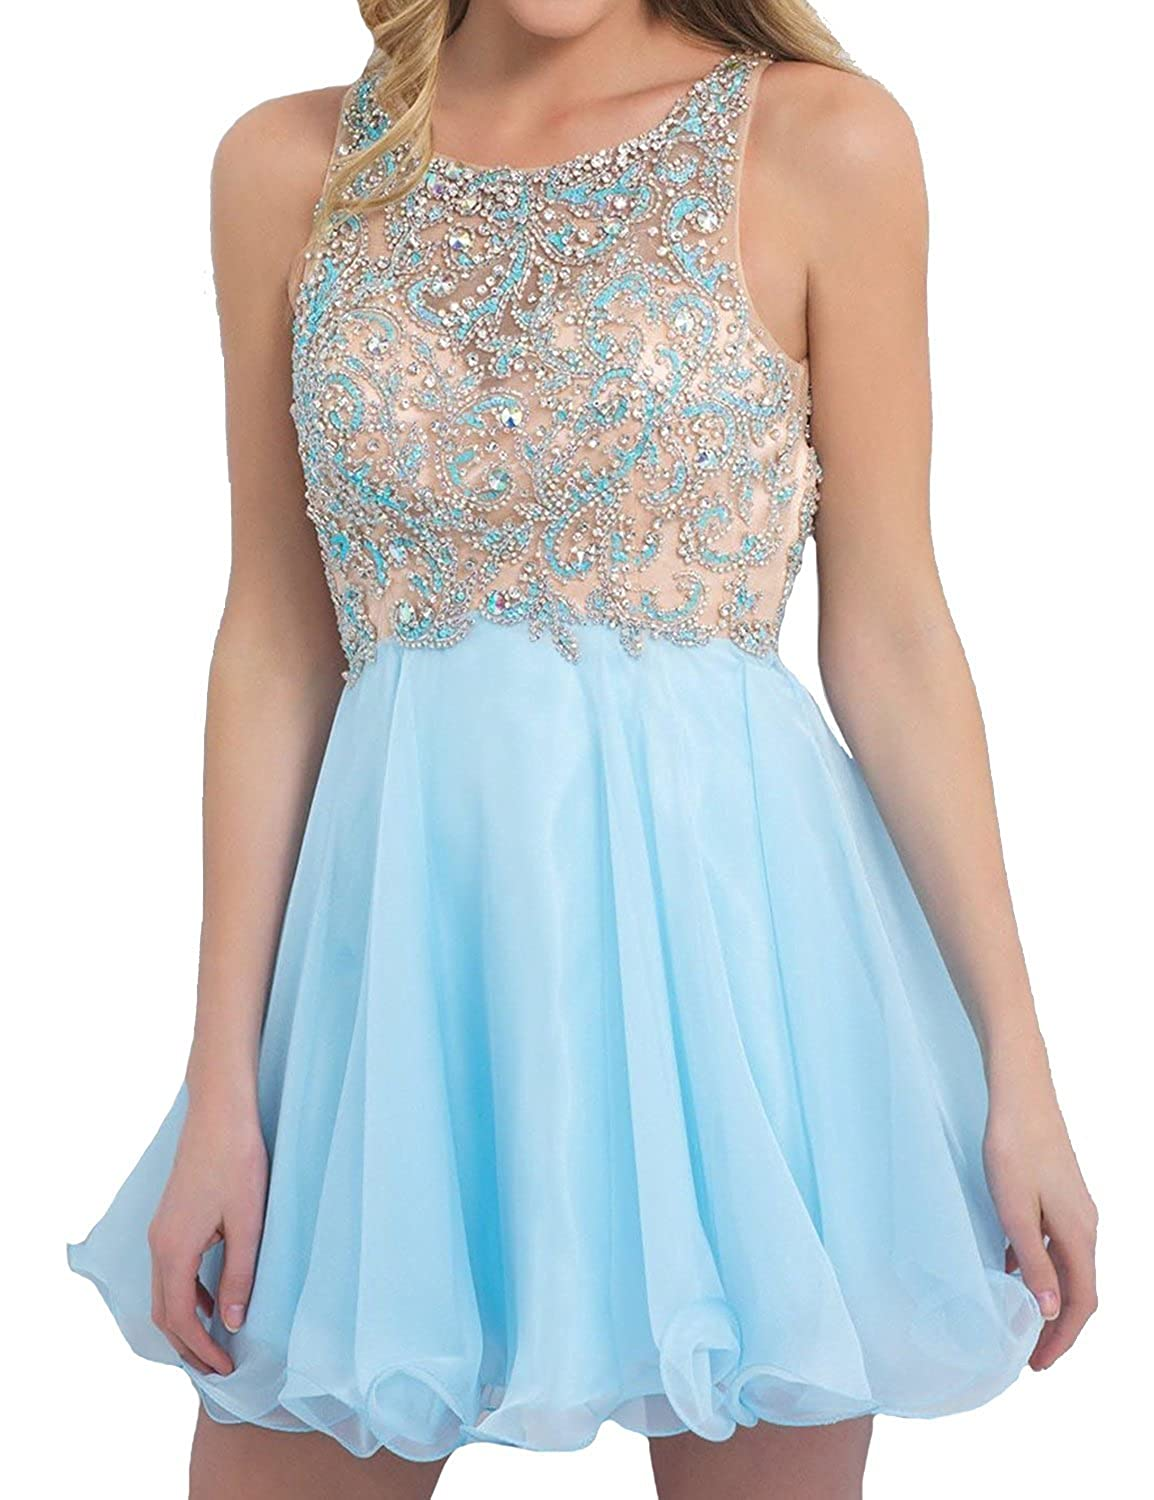 Fanciest Women's Beaded Short Homecoming Dresses 2016 Cocktail Party Dress